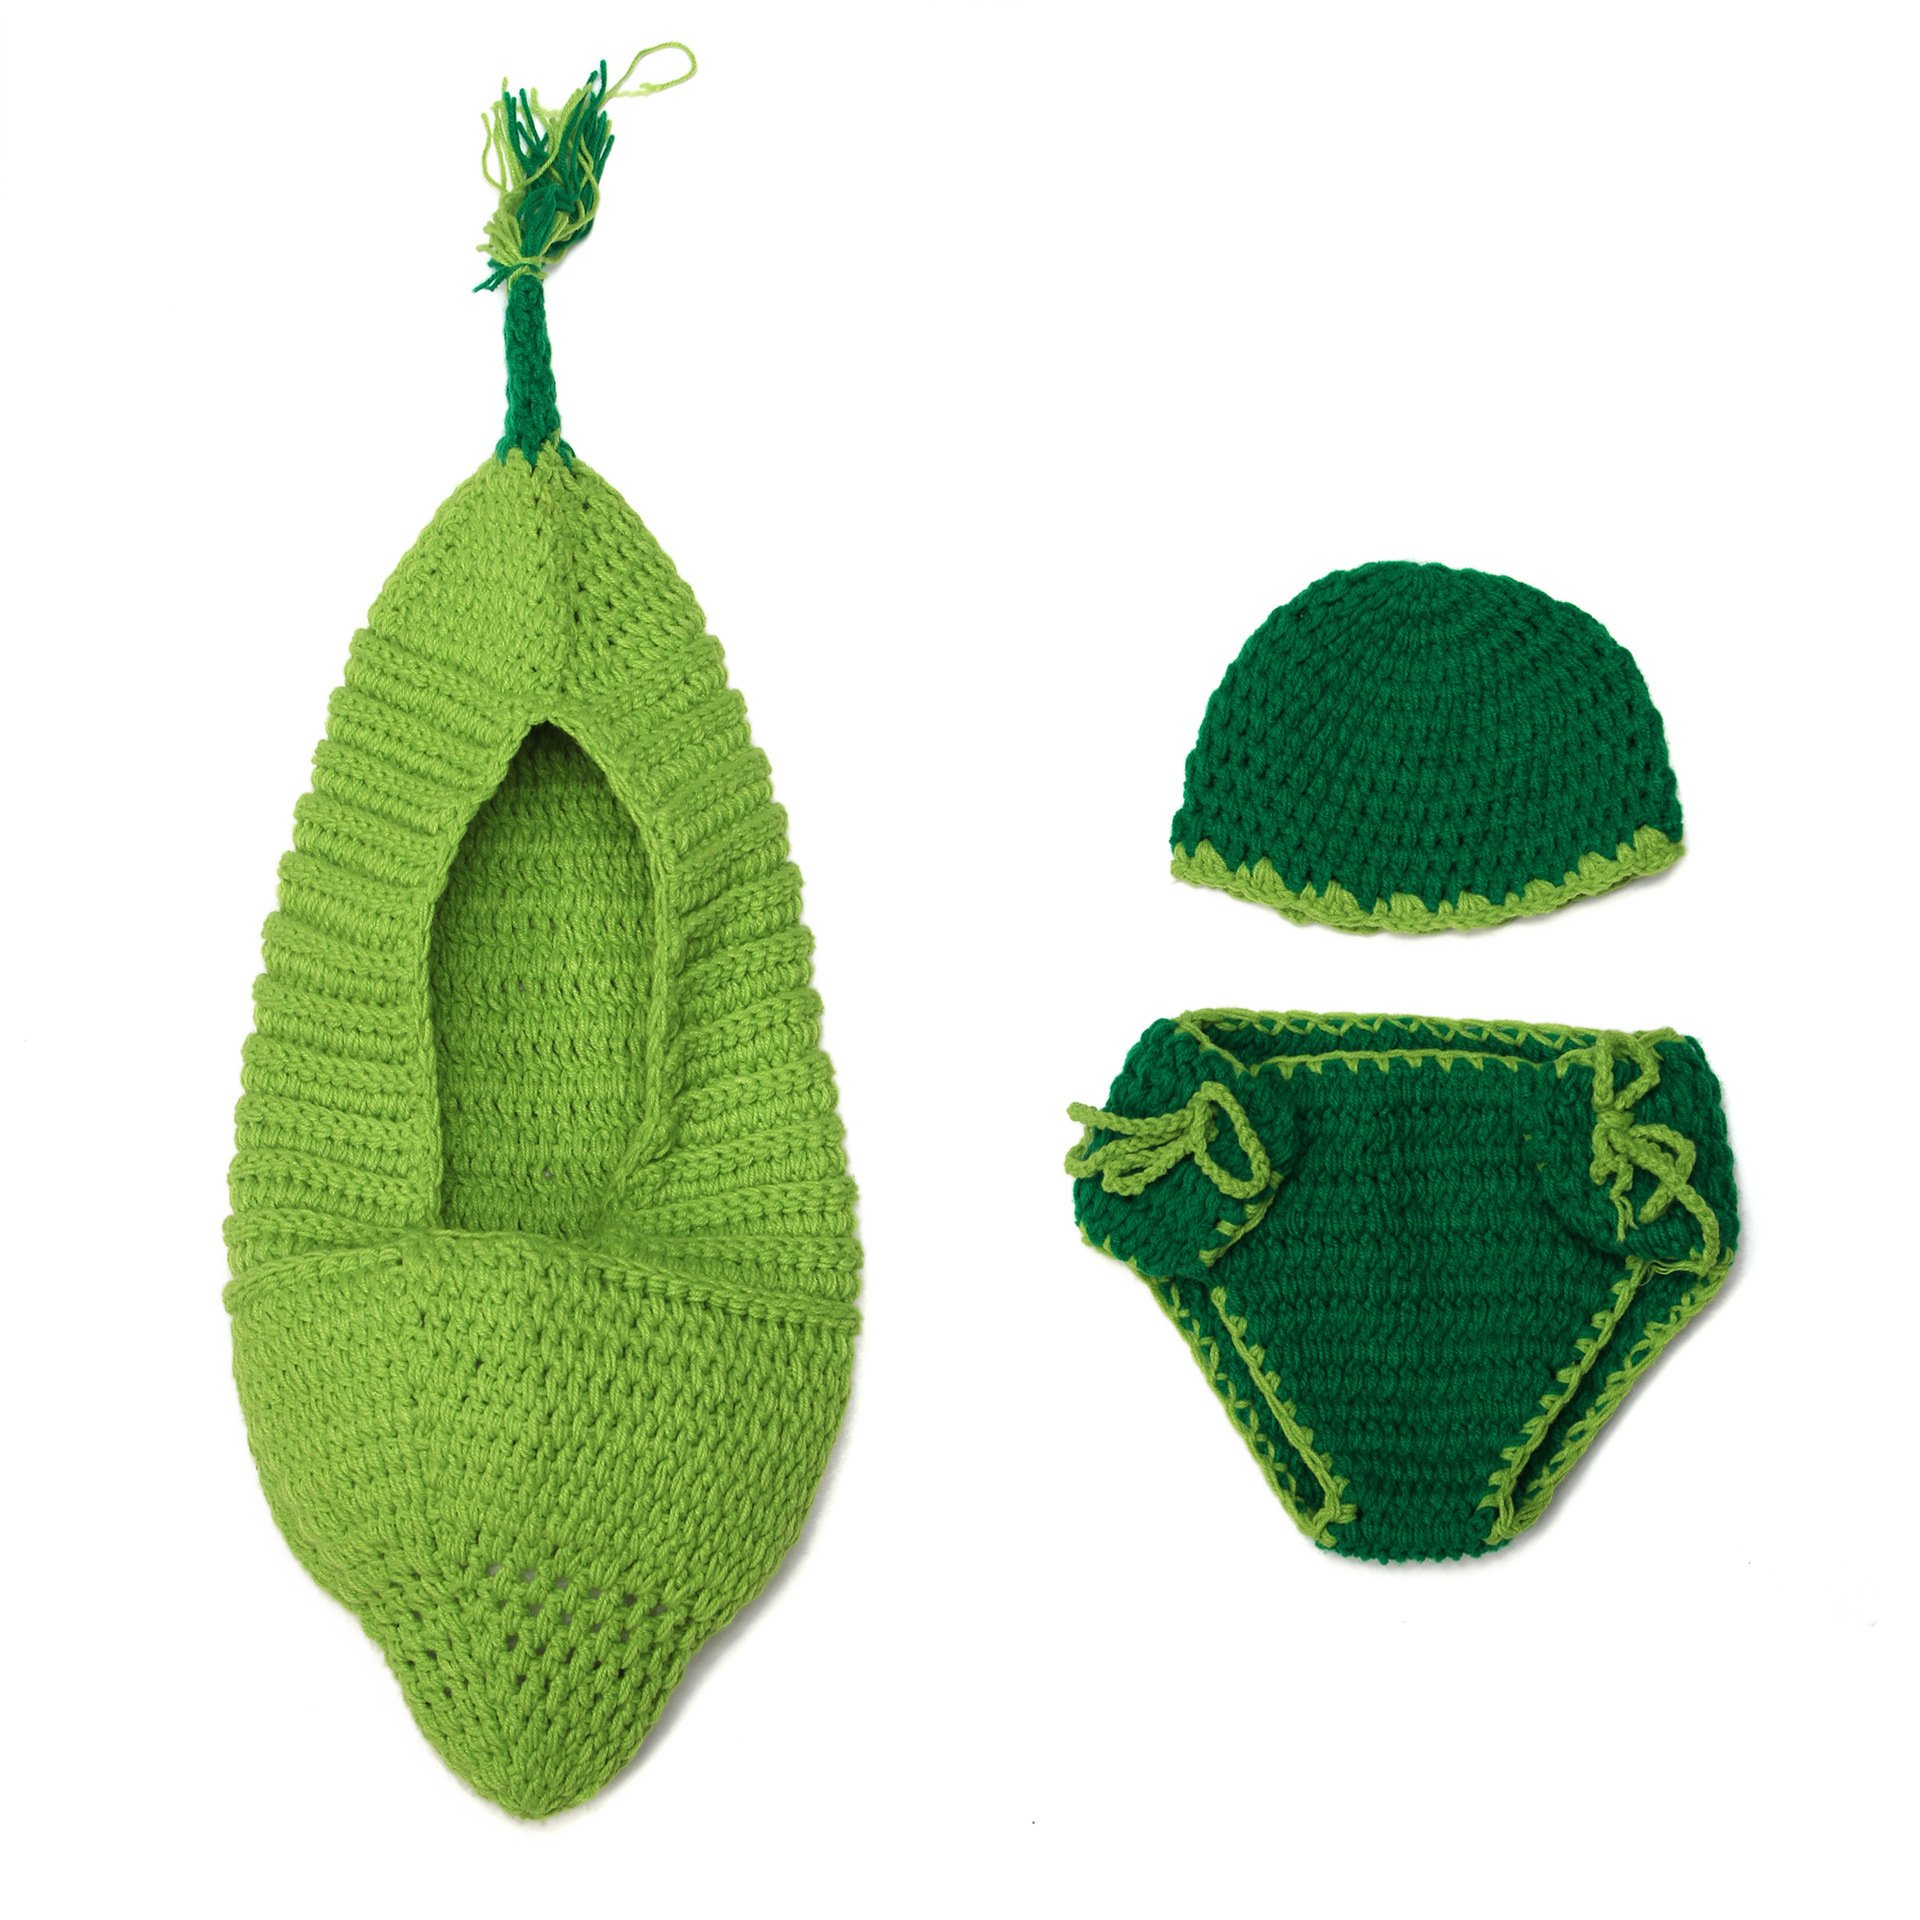 Newborn Boy Girl Handcrafted Crochet Knit Bean Outfit Photo Photography Props